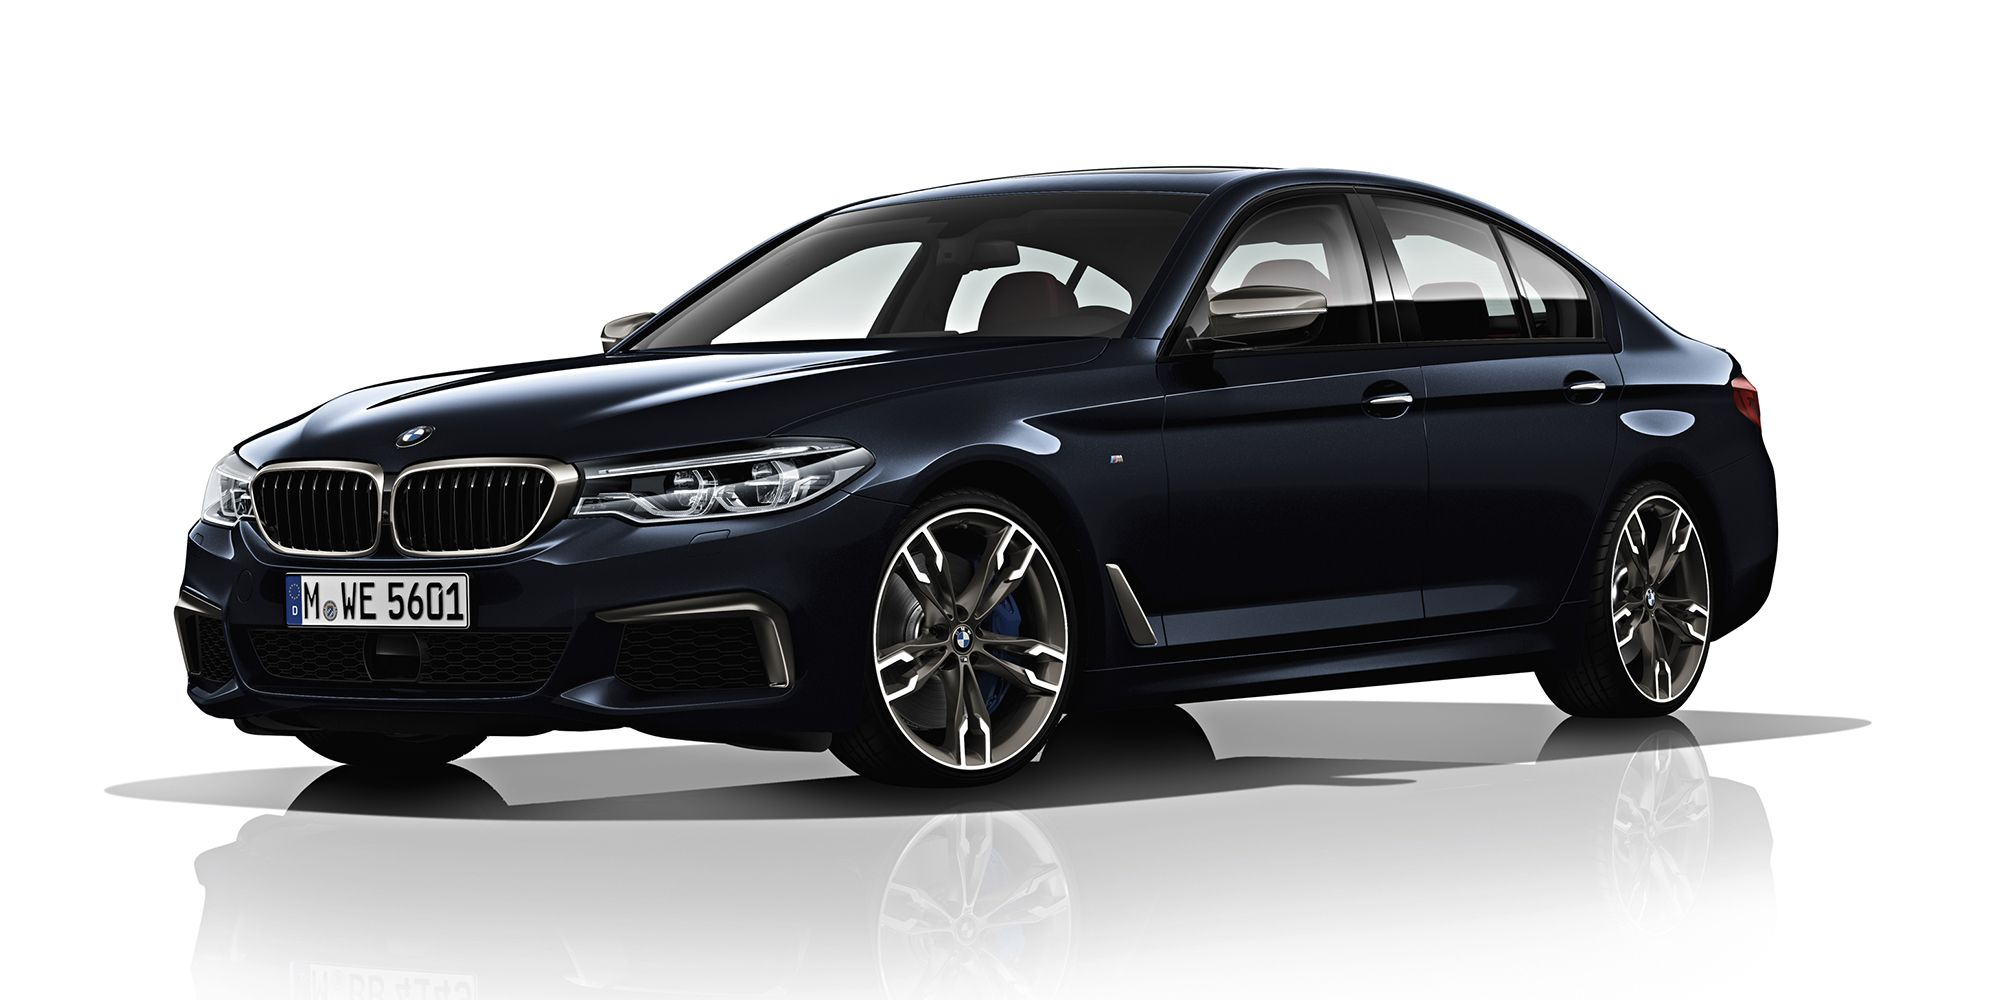 Bmw M5 0 60 >> The 2017 Bmw M550i Does 0 60 Quicker Than Today S M5